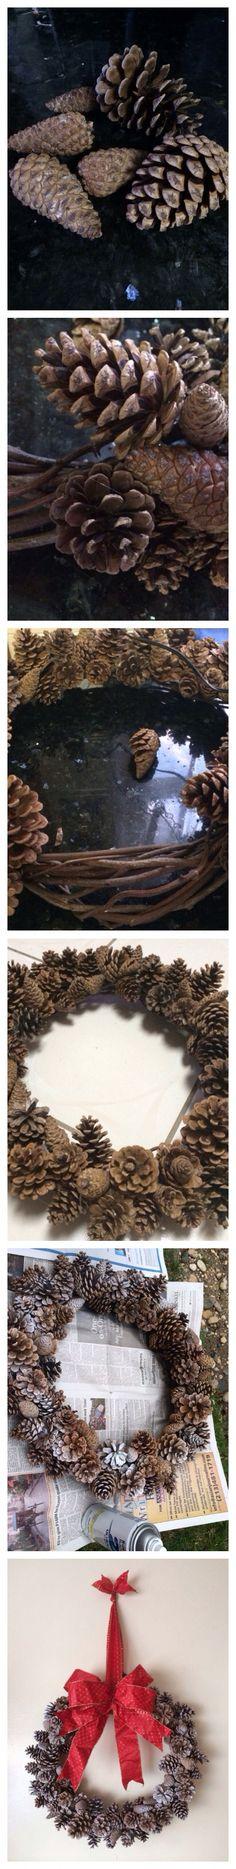 DIY TUTORIAL CHRISTMAS WREATH HOW TO MAKE PINE CONE WREATH WHAT YOU NEED: